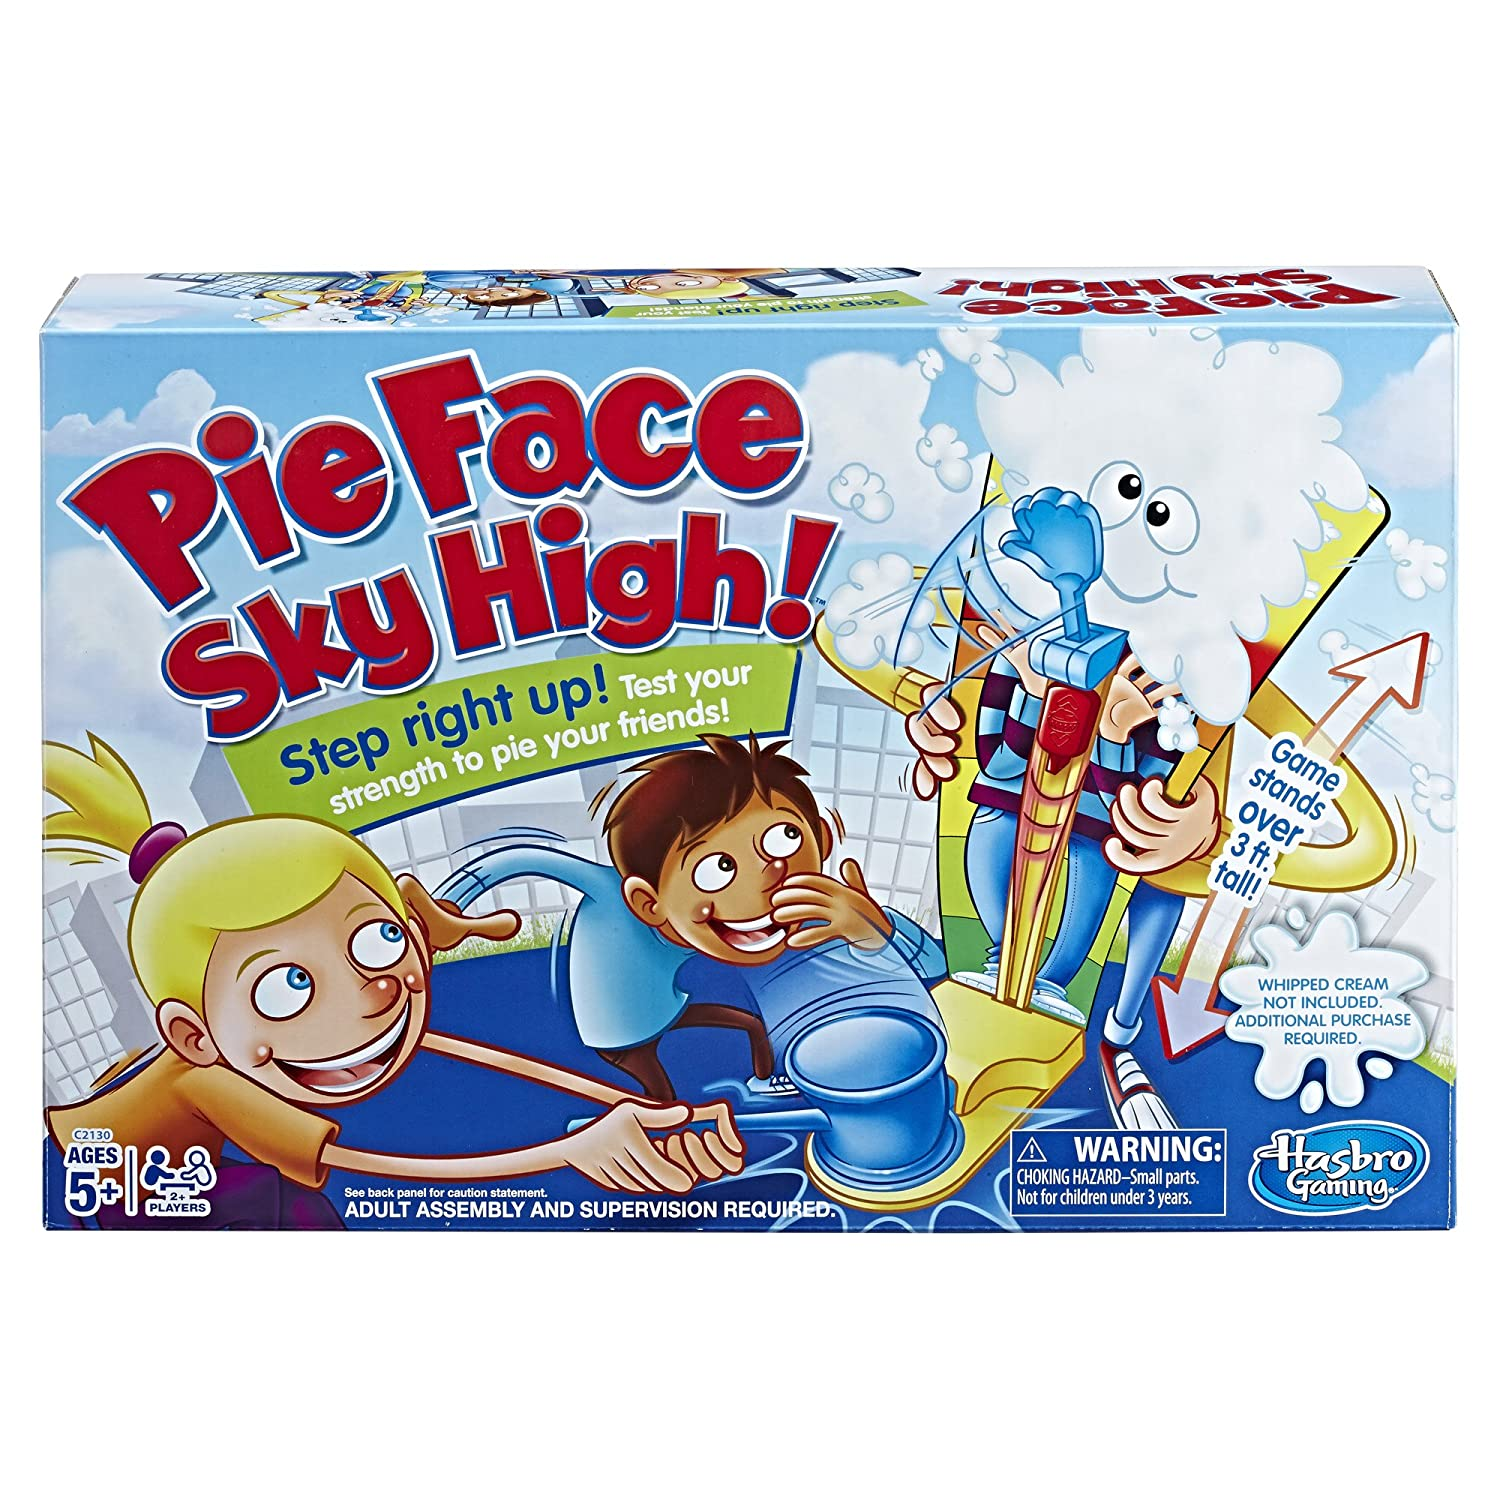 You can buy the Pie Face Sky High Game here